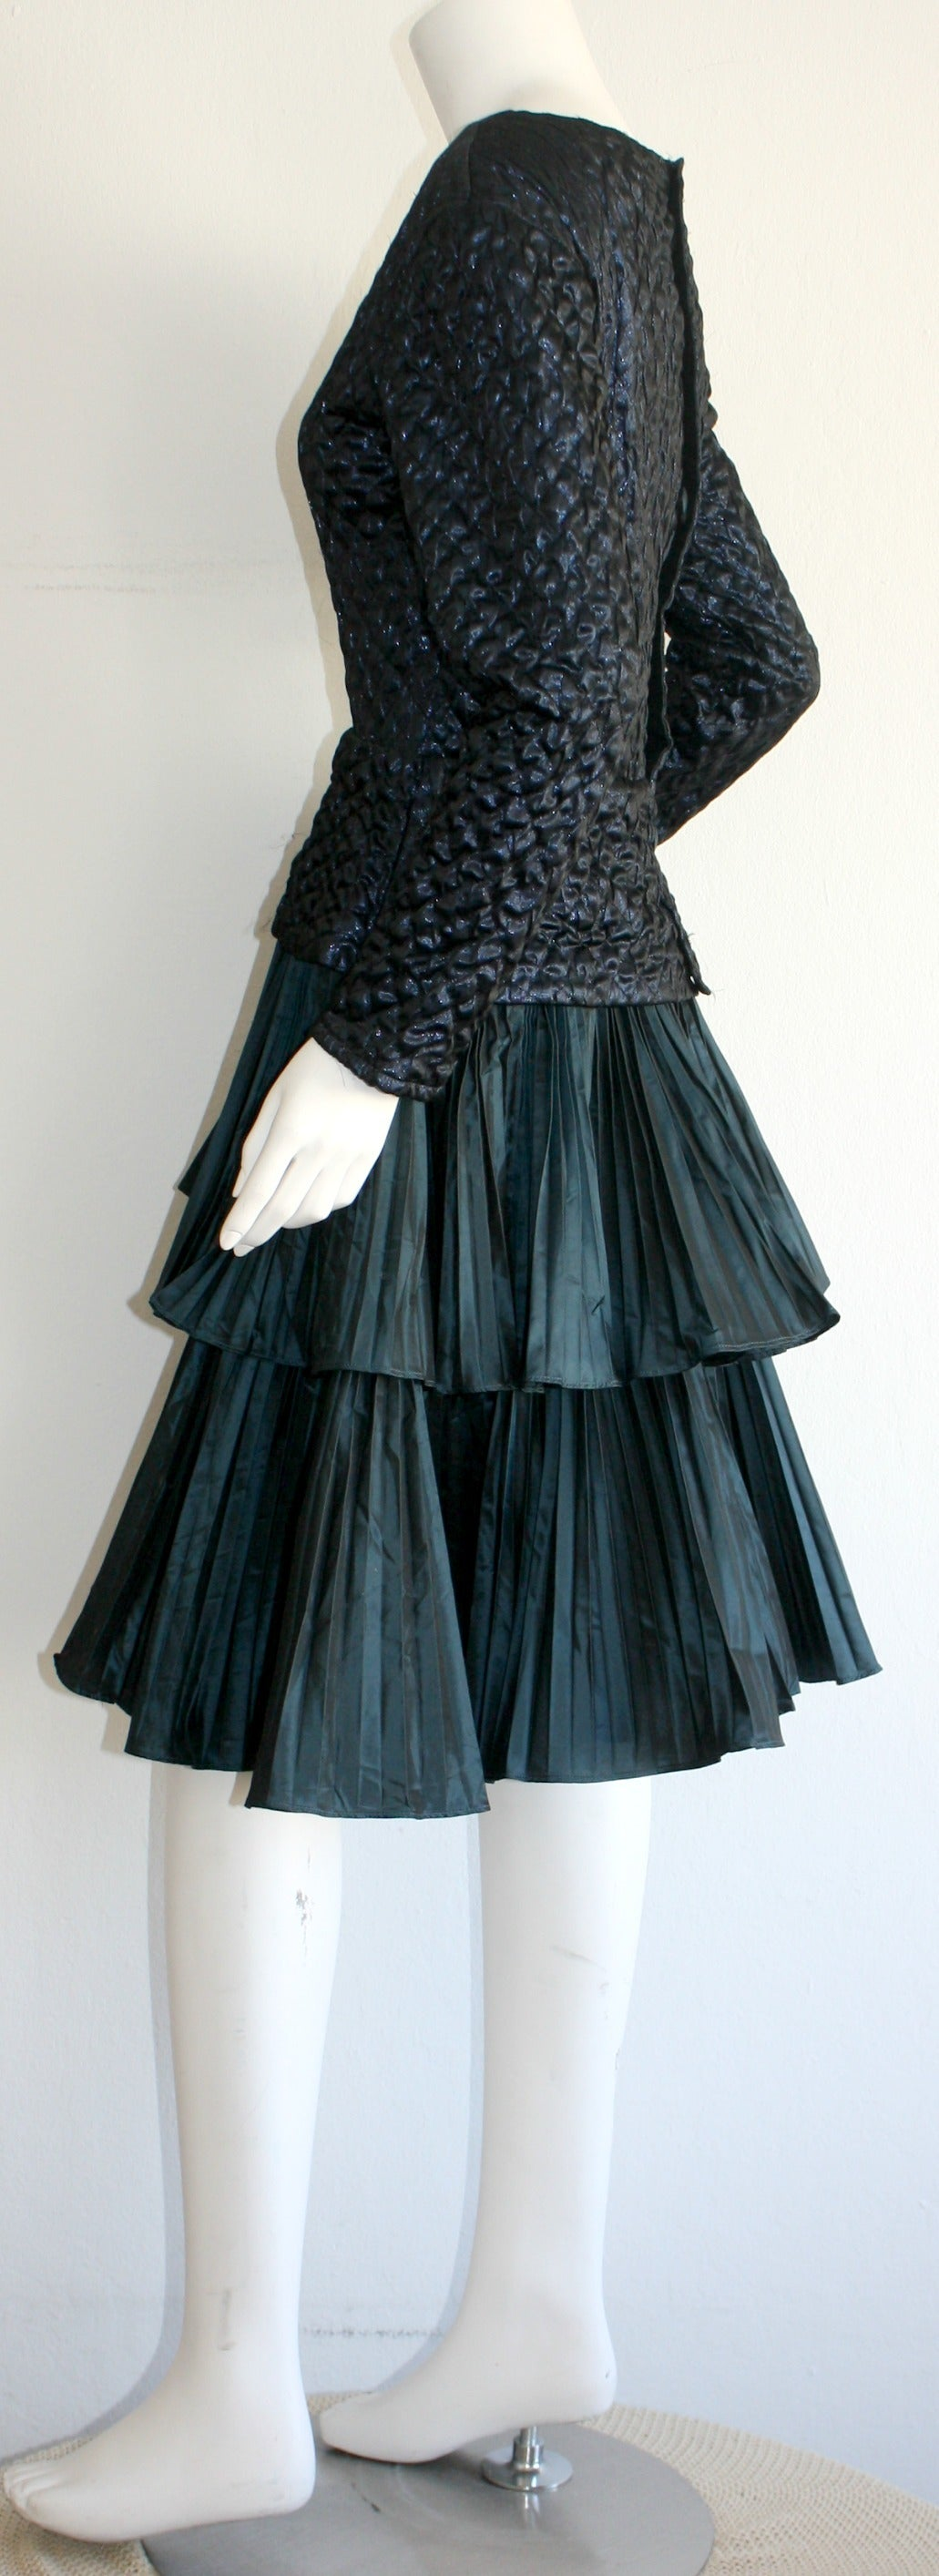 Bernard Perris Beautiful Navy Blue Metallic Quilted Accordion Tiered Dress For Sale 3